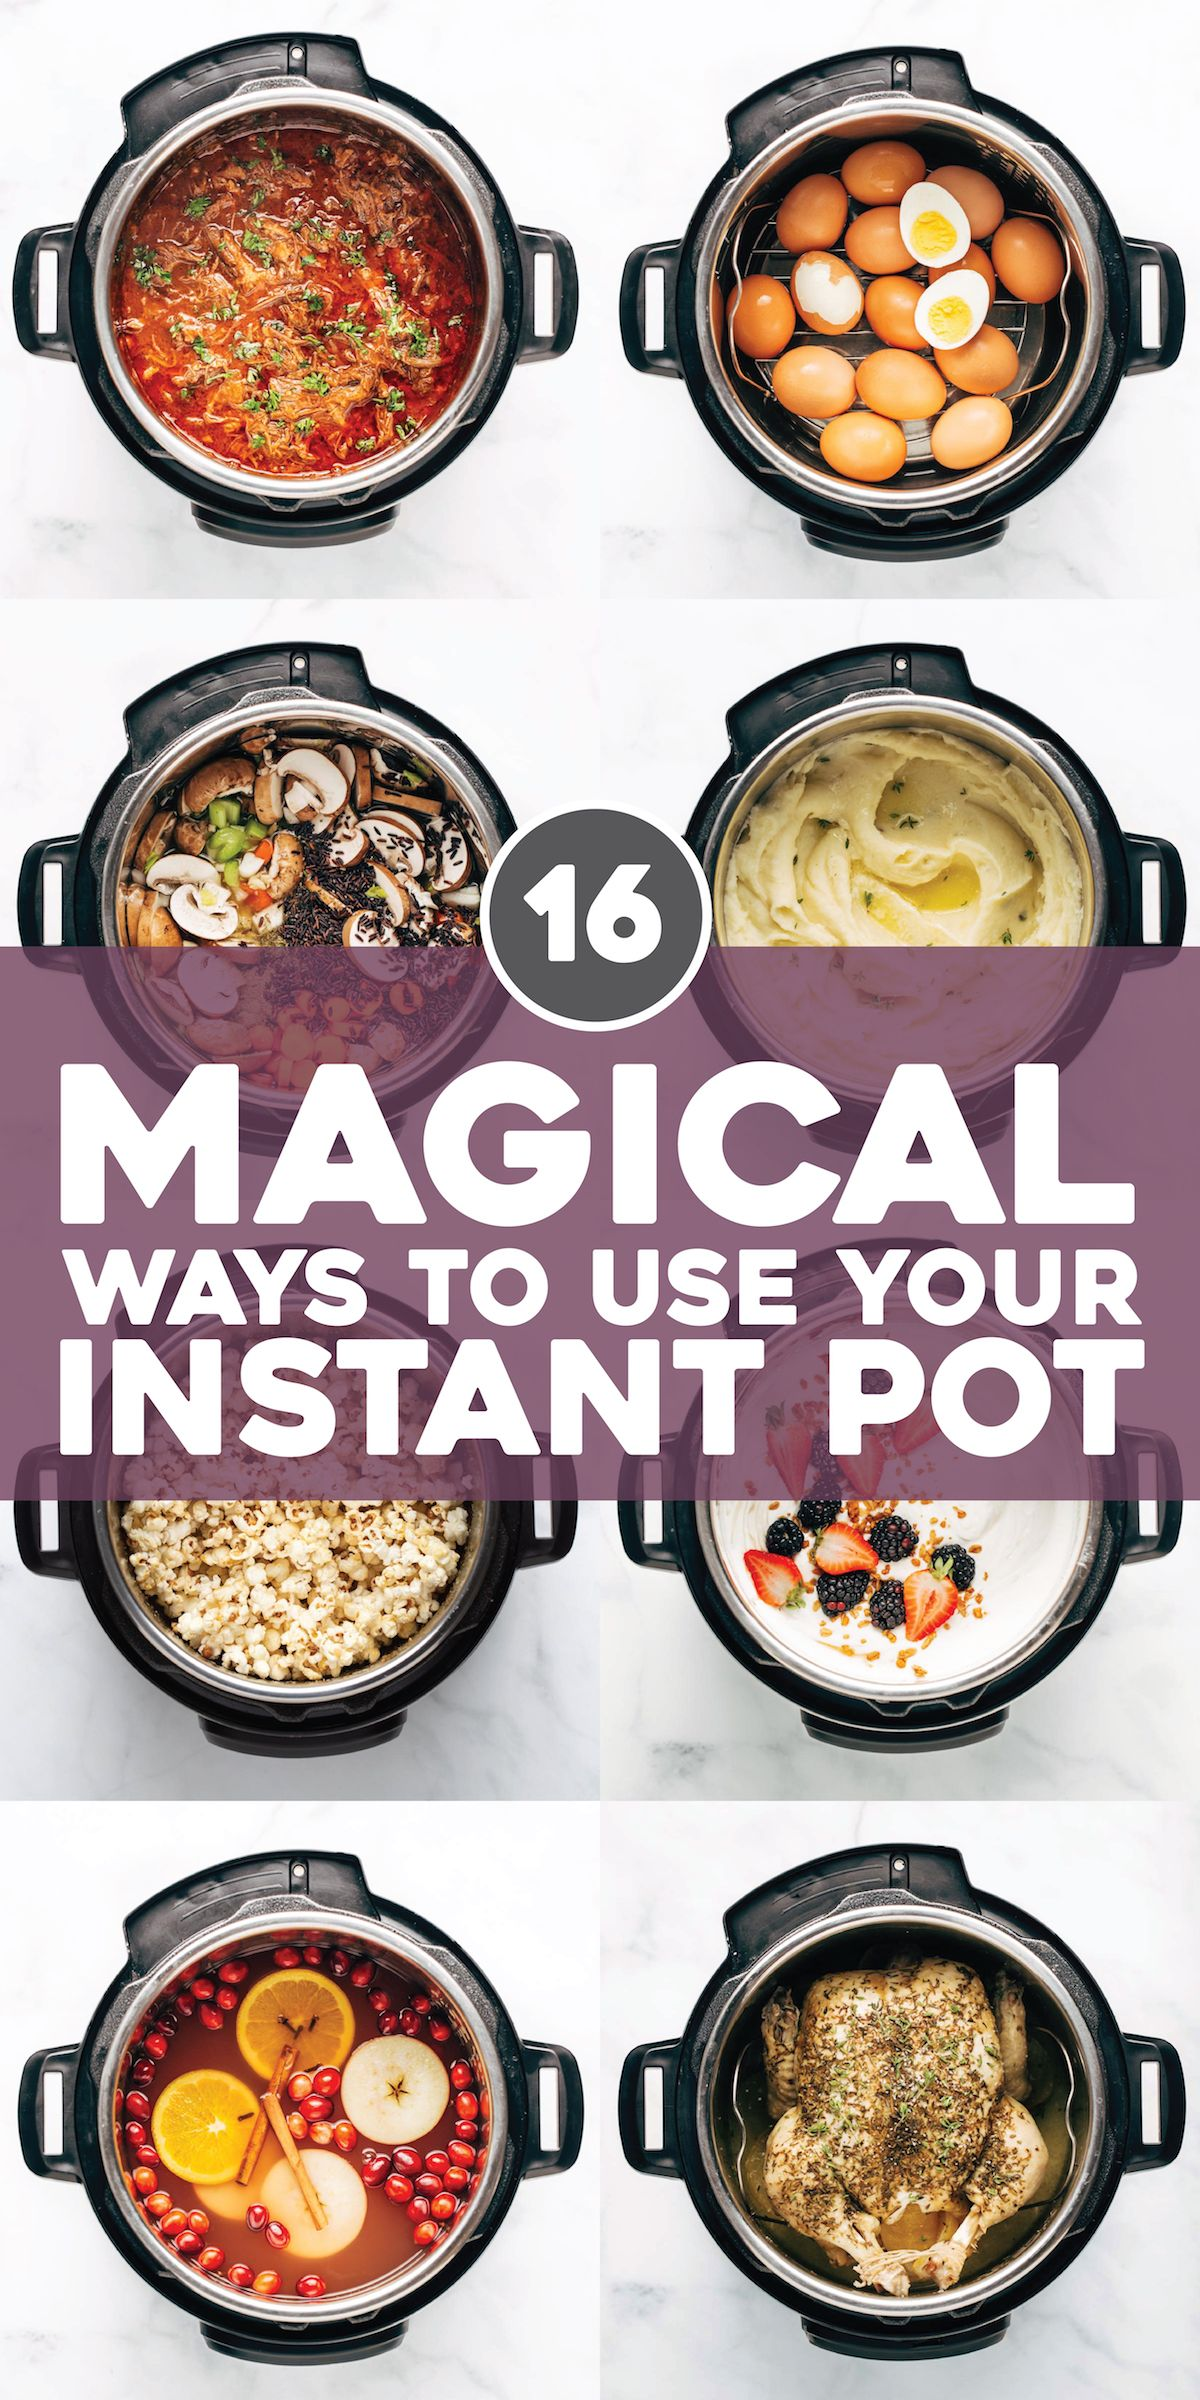 16 Magical Ways to Use Your Instant Pot! From soups, to yogurt, to snacks, to drinks: it does it all! One of our favorite all-purpose kitchen gadgets. #instantpot #cooking #holidays #mealprep | pinchofyum.com